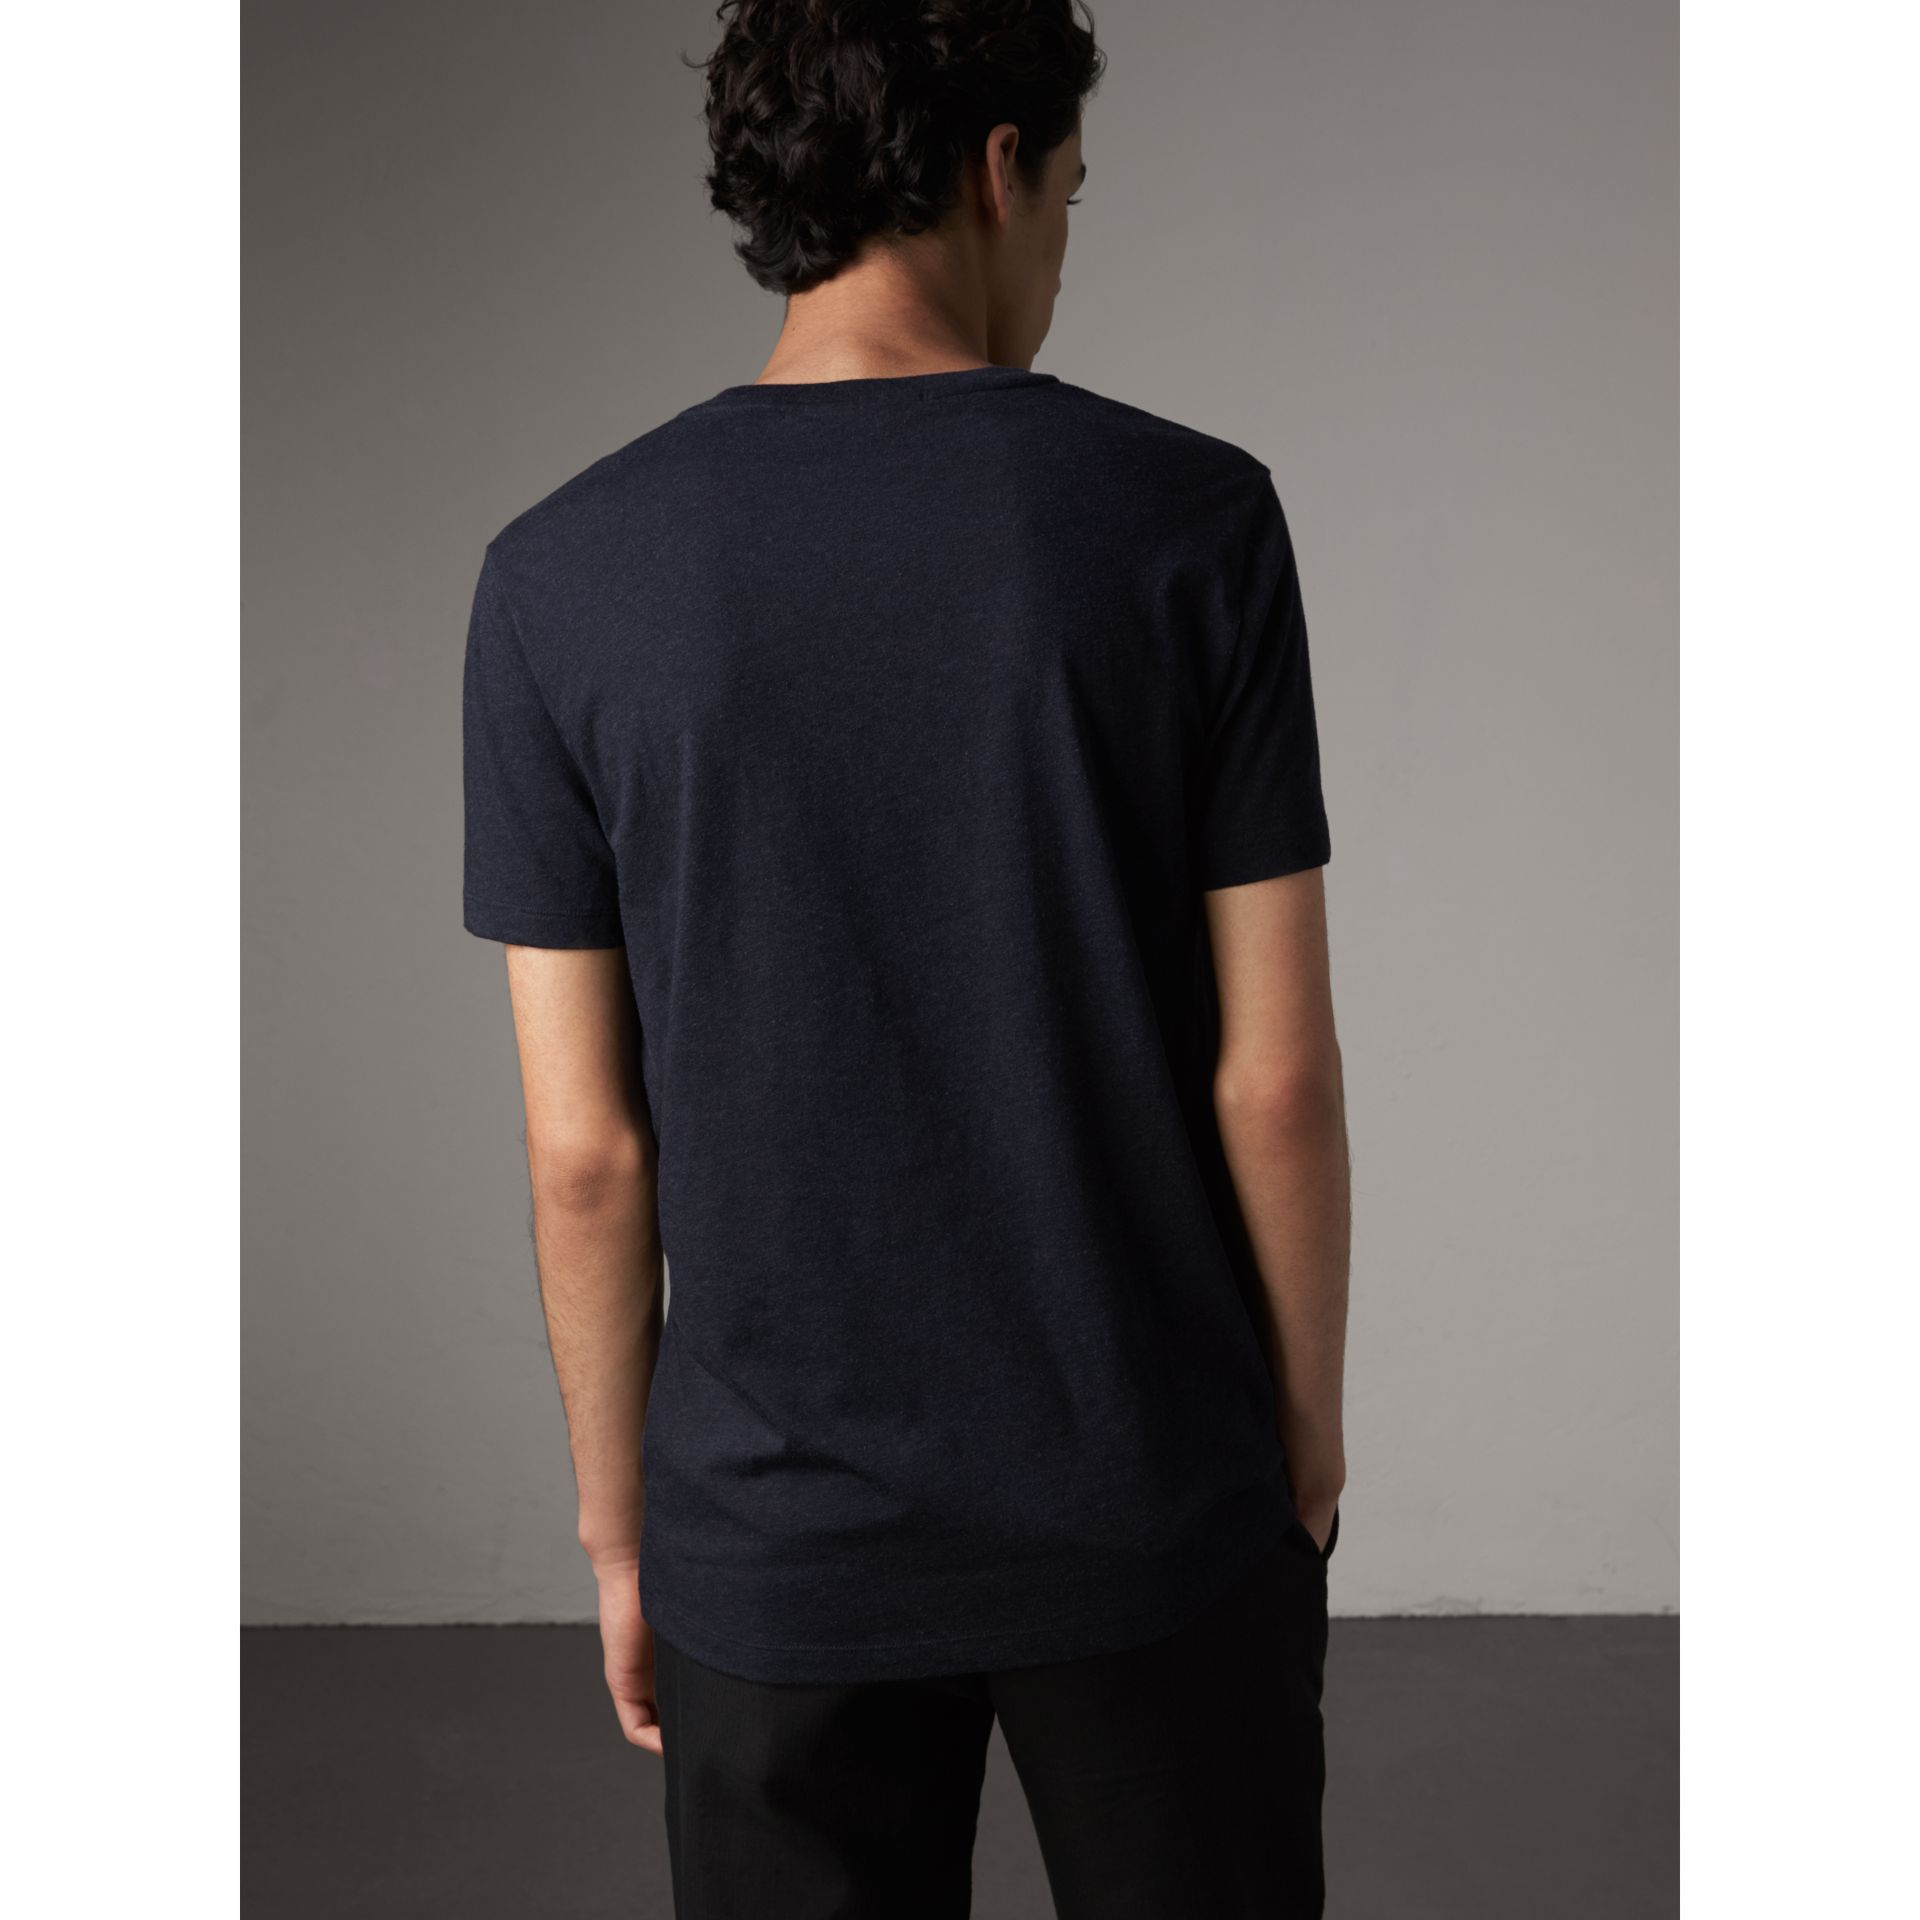 Devoré Cotton Jersey T-shirt in Navy Melange - Men | Burberry United States - gallery image 2